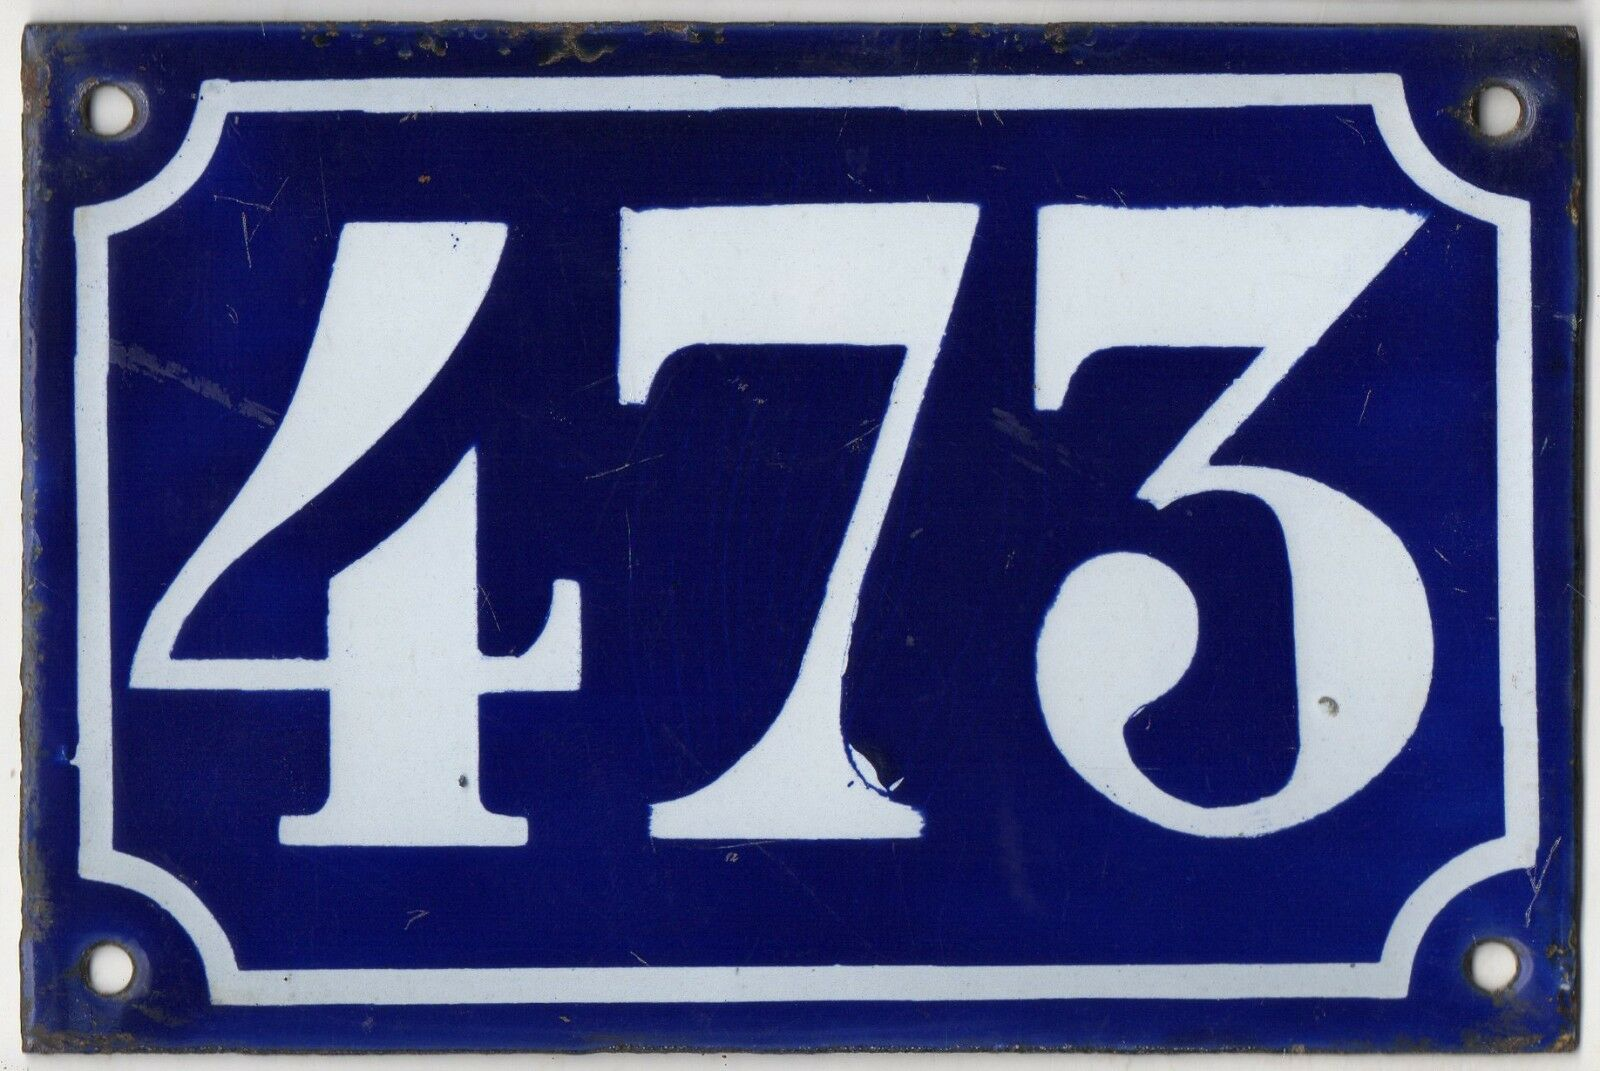 Old blue French house number 473 door gate plate plaque enamel metal sign c1900